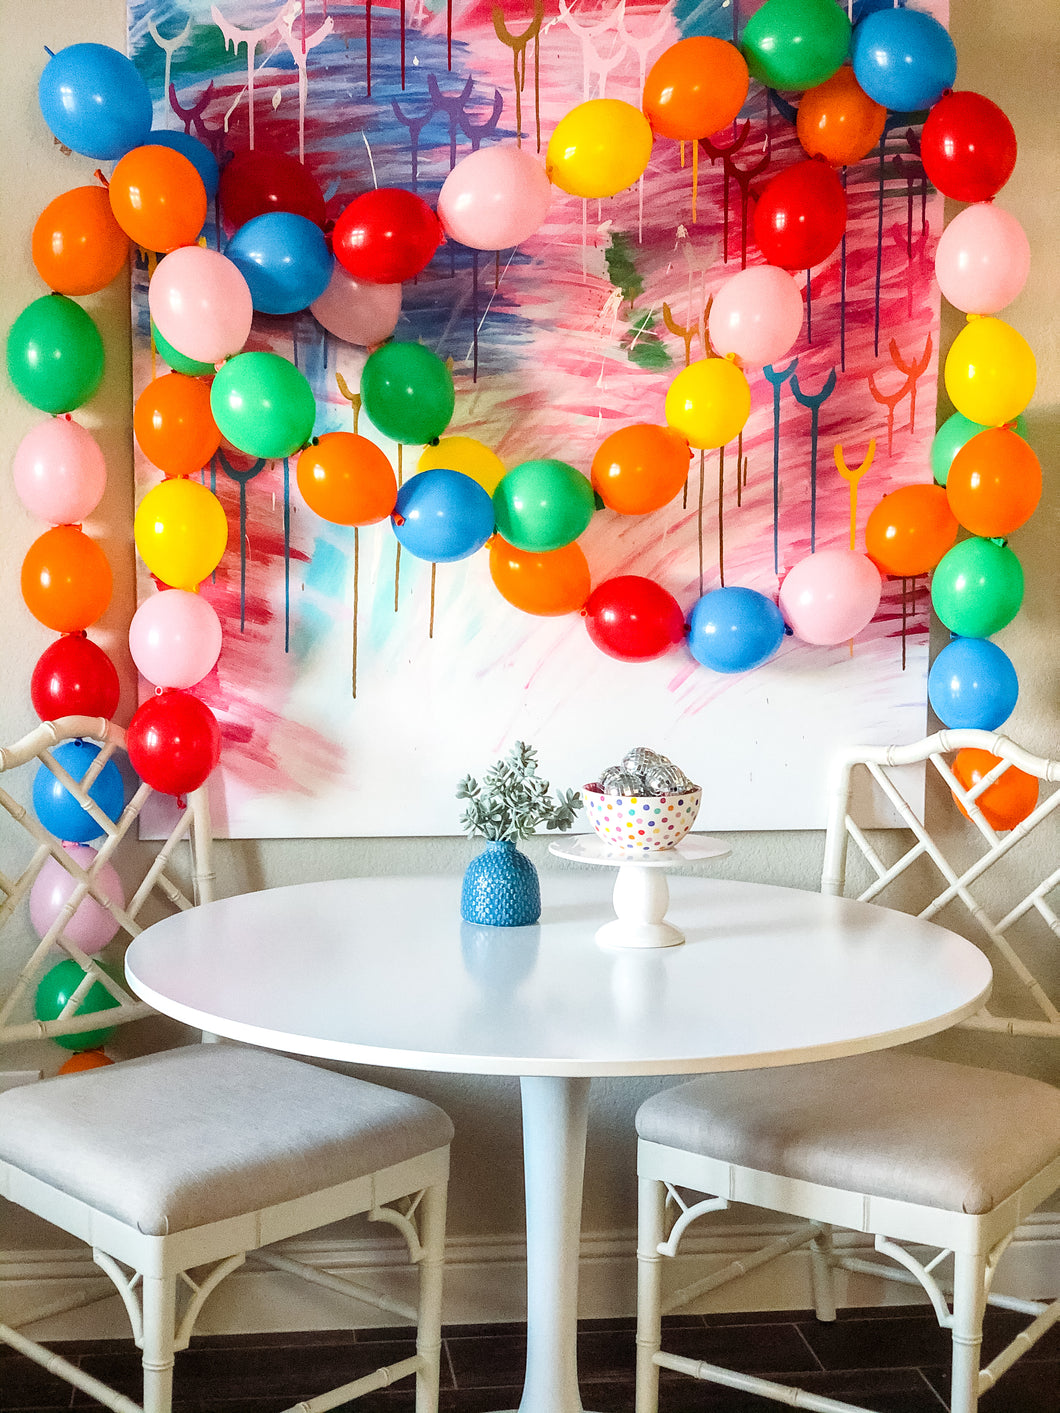 DIY Easy-Linking Balloon Garland 6